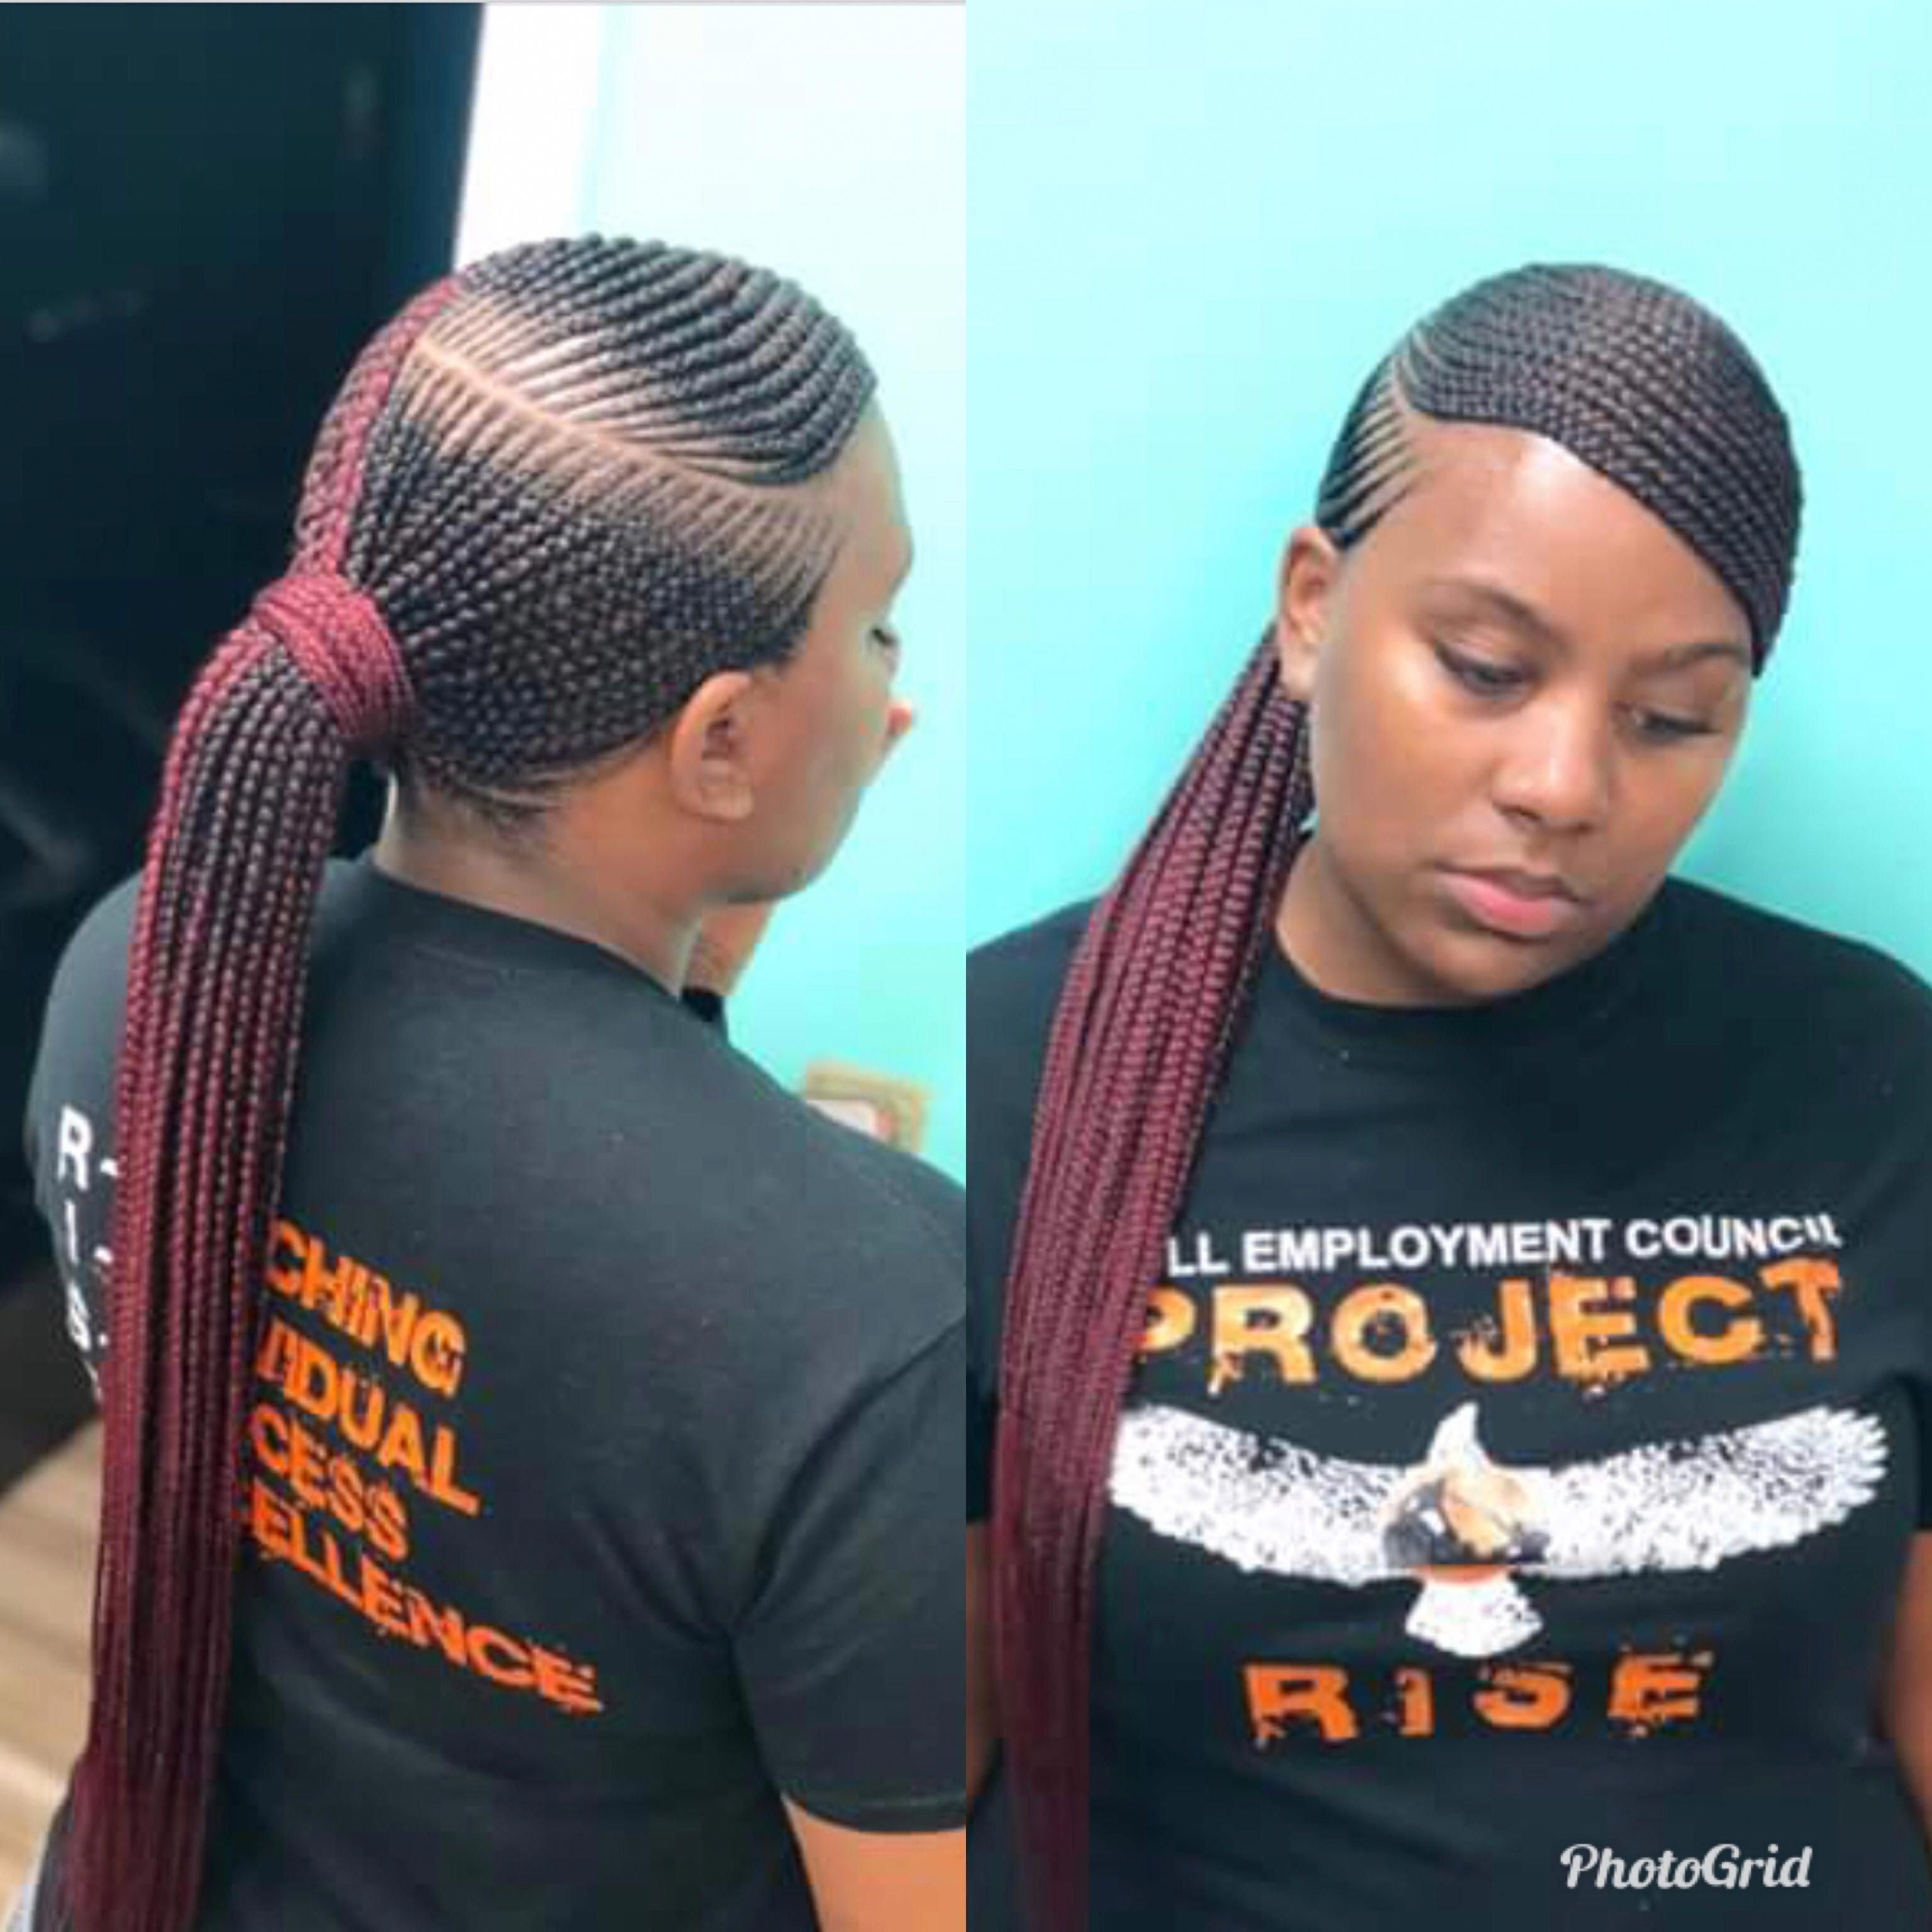 Blackhairstyles With Images Black Hairstyles With Weave